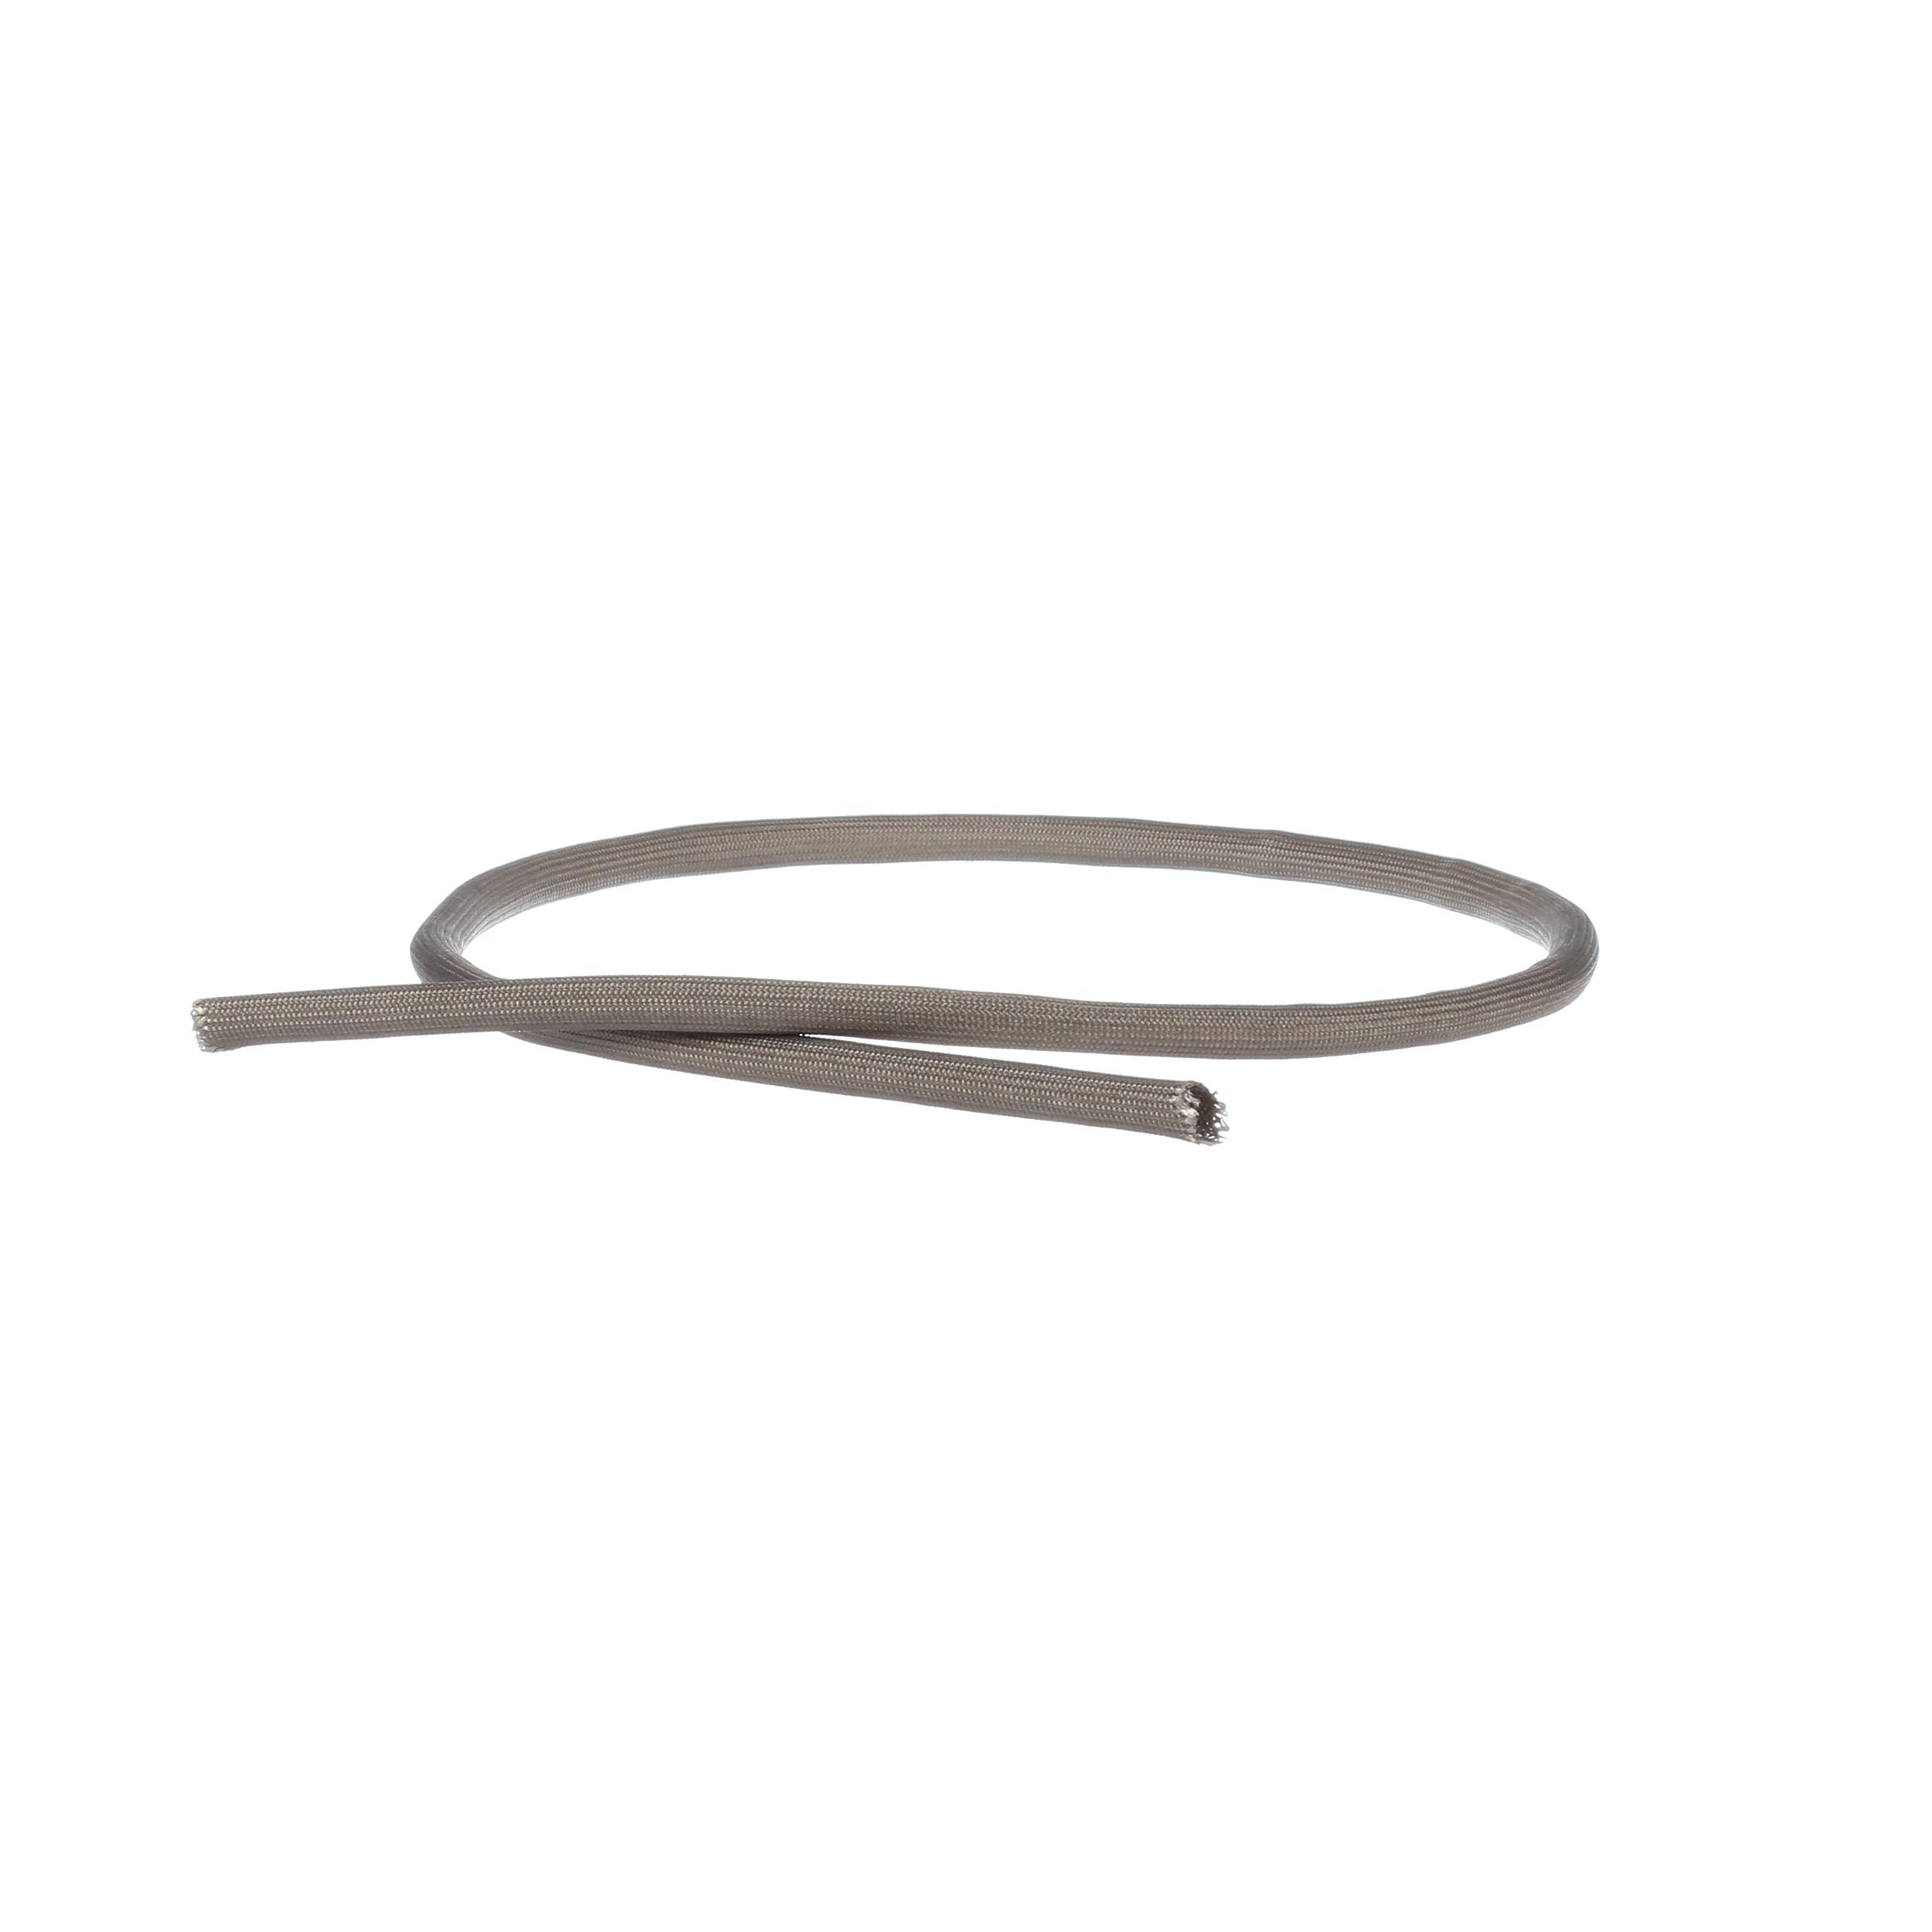 DOYON DOOR GASKET W/O CLIPS (PER FT)